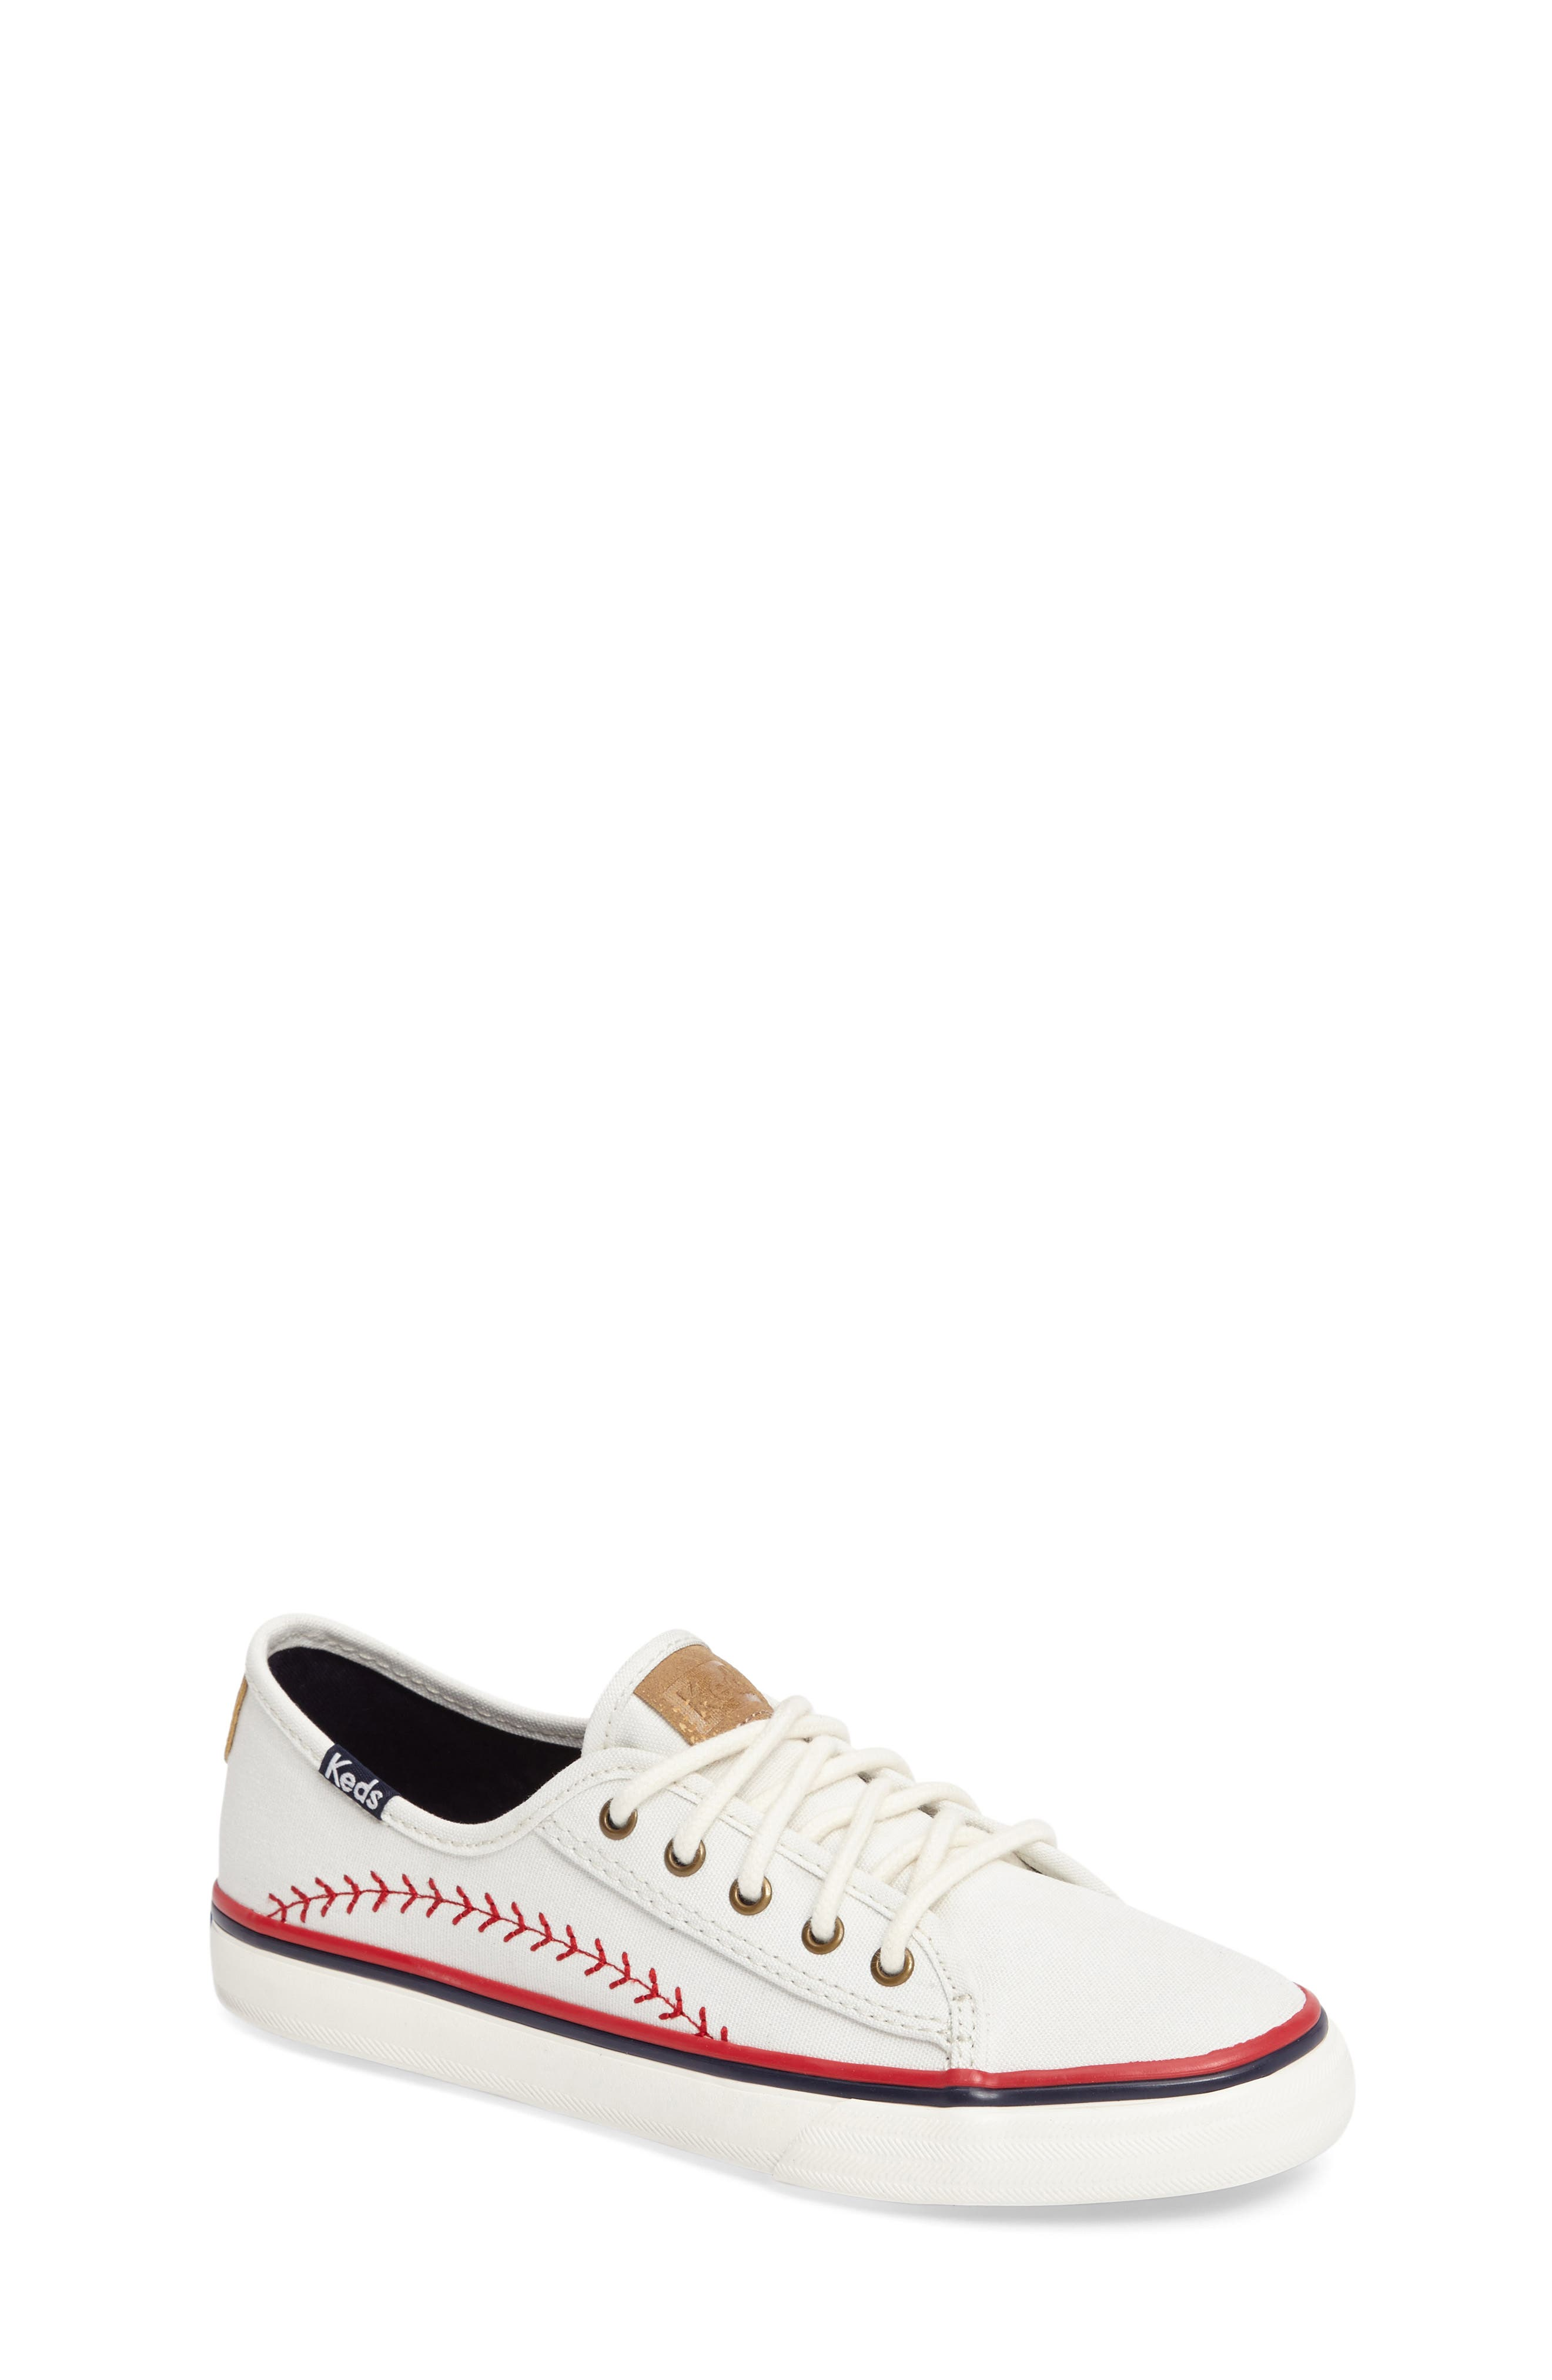 Main Image - Keds® Pennant Double Up Sneaker (Toddler, Little Kid & Big Kid)